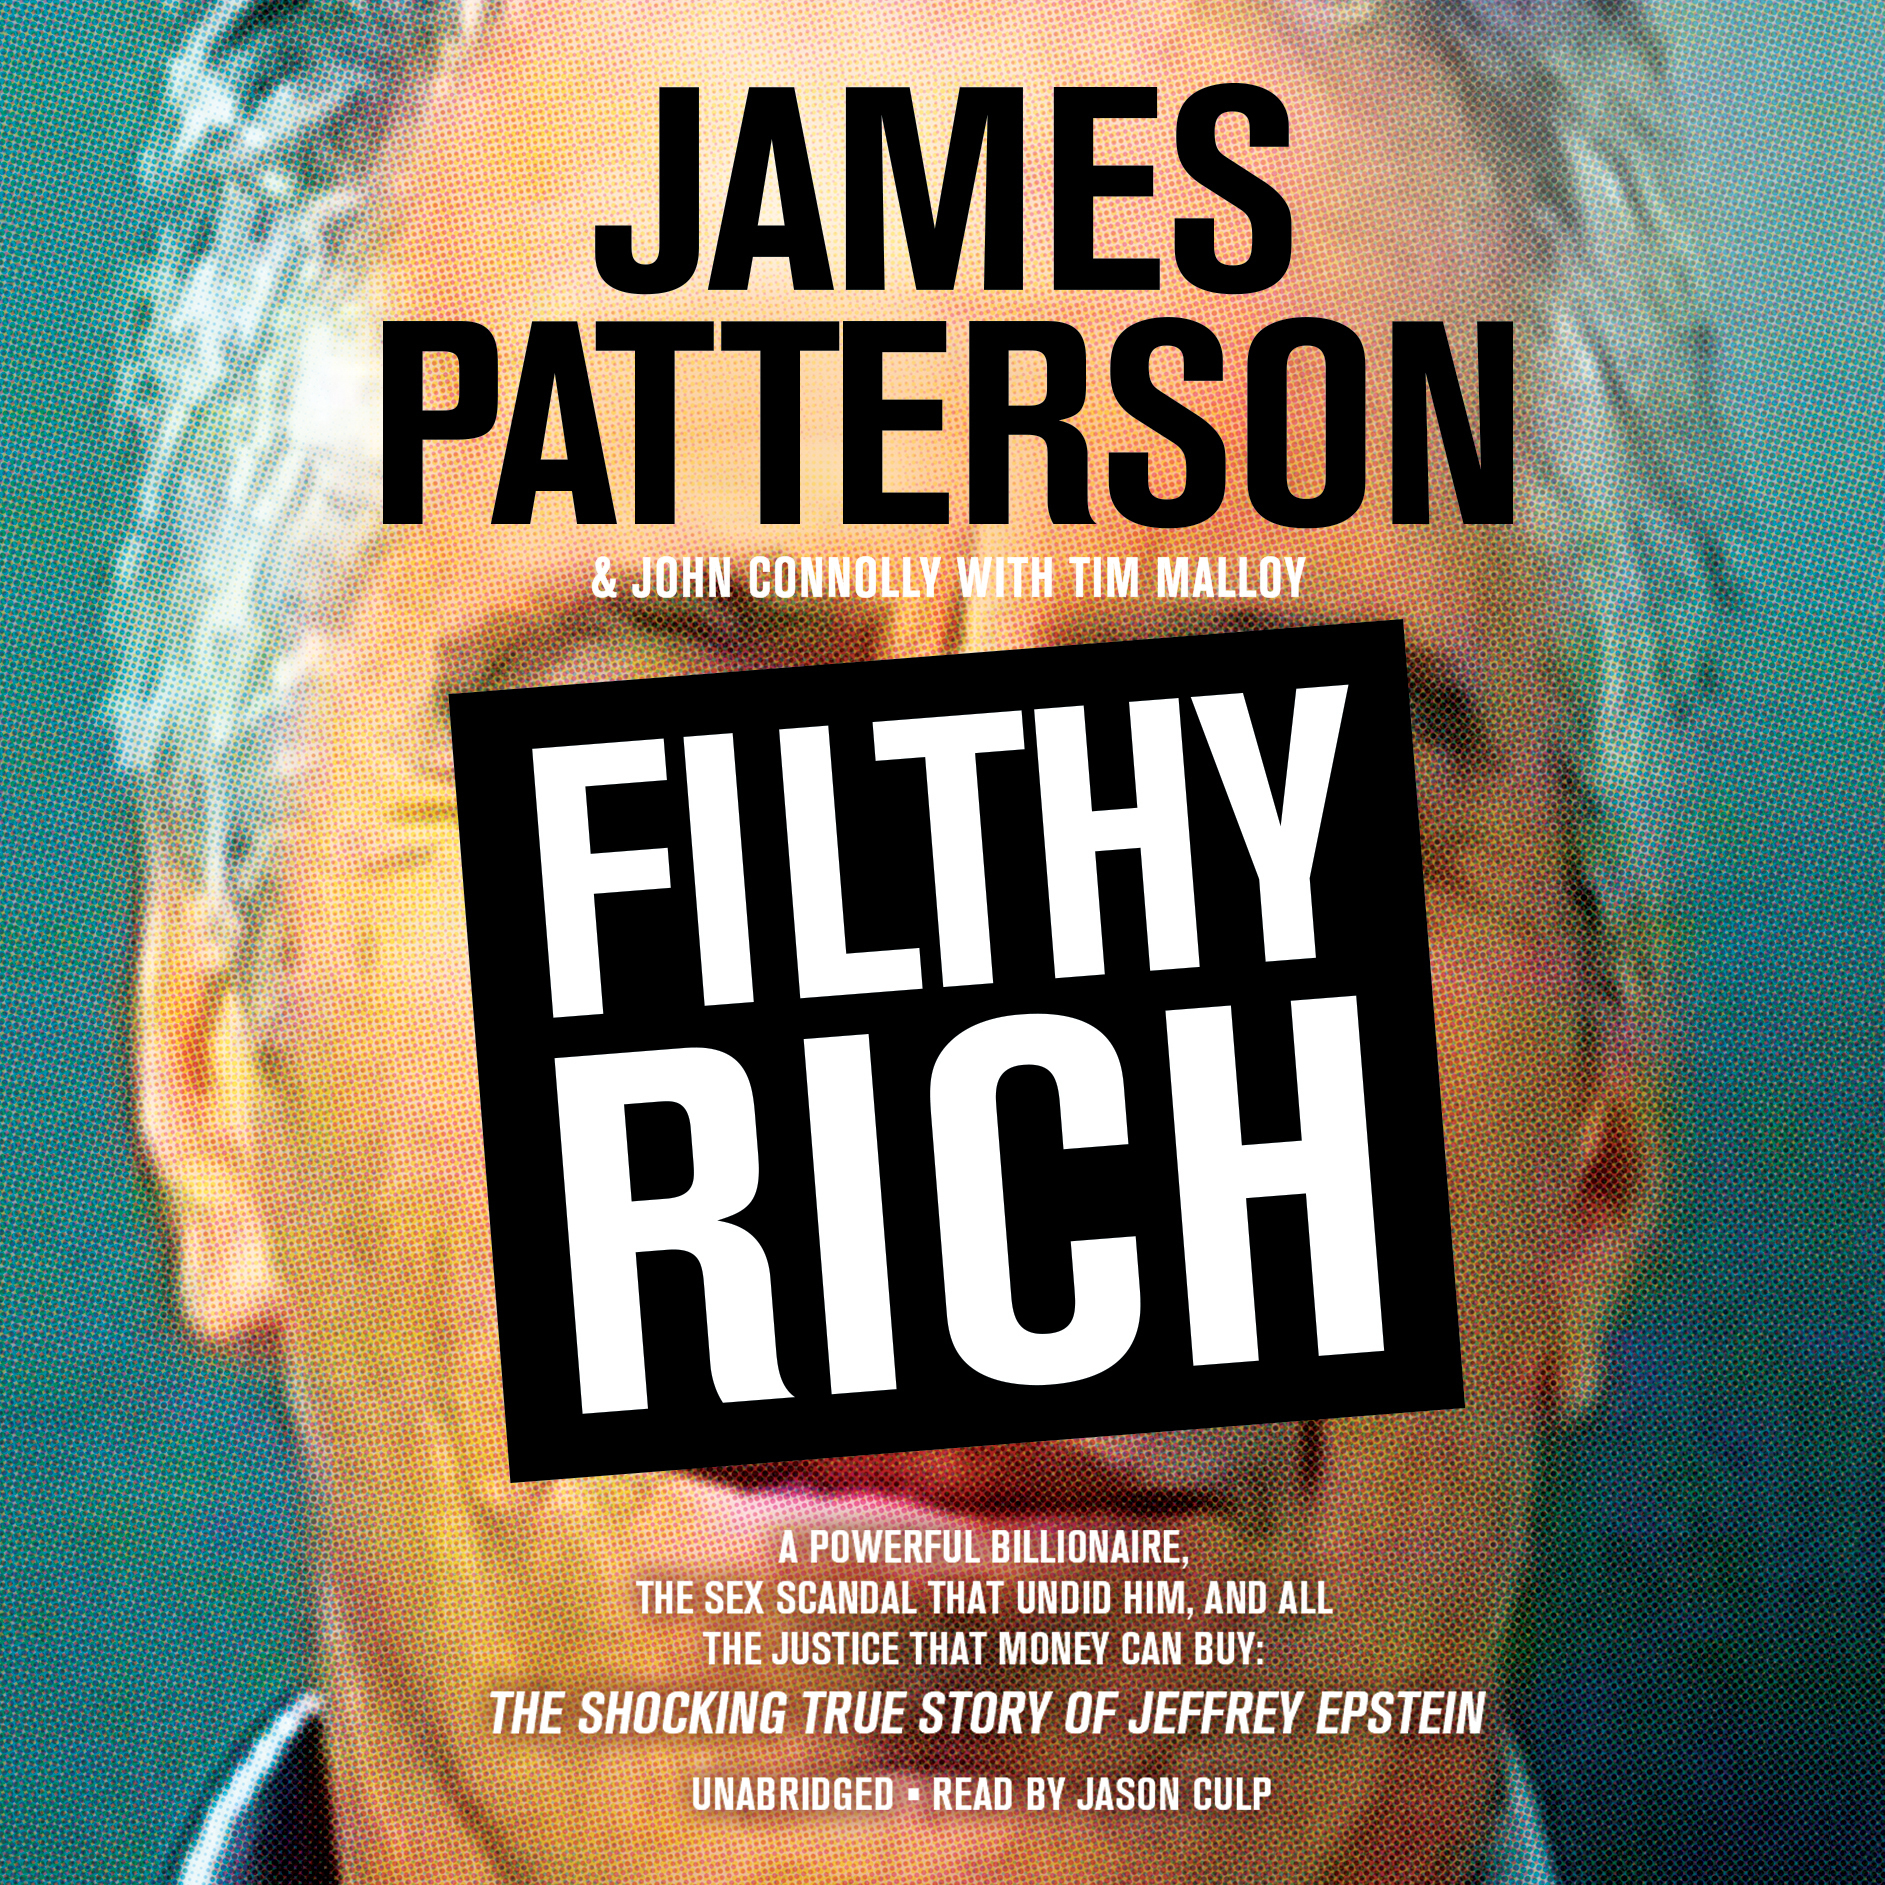 Printable Filthy Rich: A Powerful Billionaire, the Sex Scandal that Undid Him, and All the Justice that Money Can Buy: The Shocking True Story of Jeffrey Epstein Audiobook Cover Art